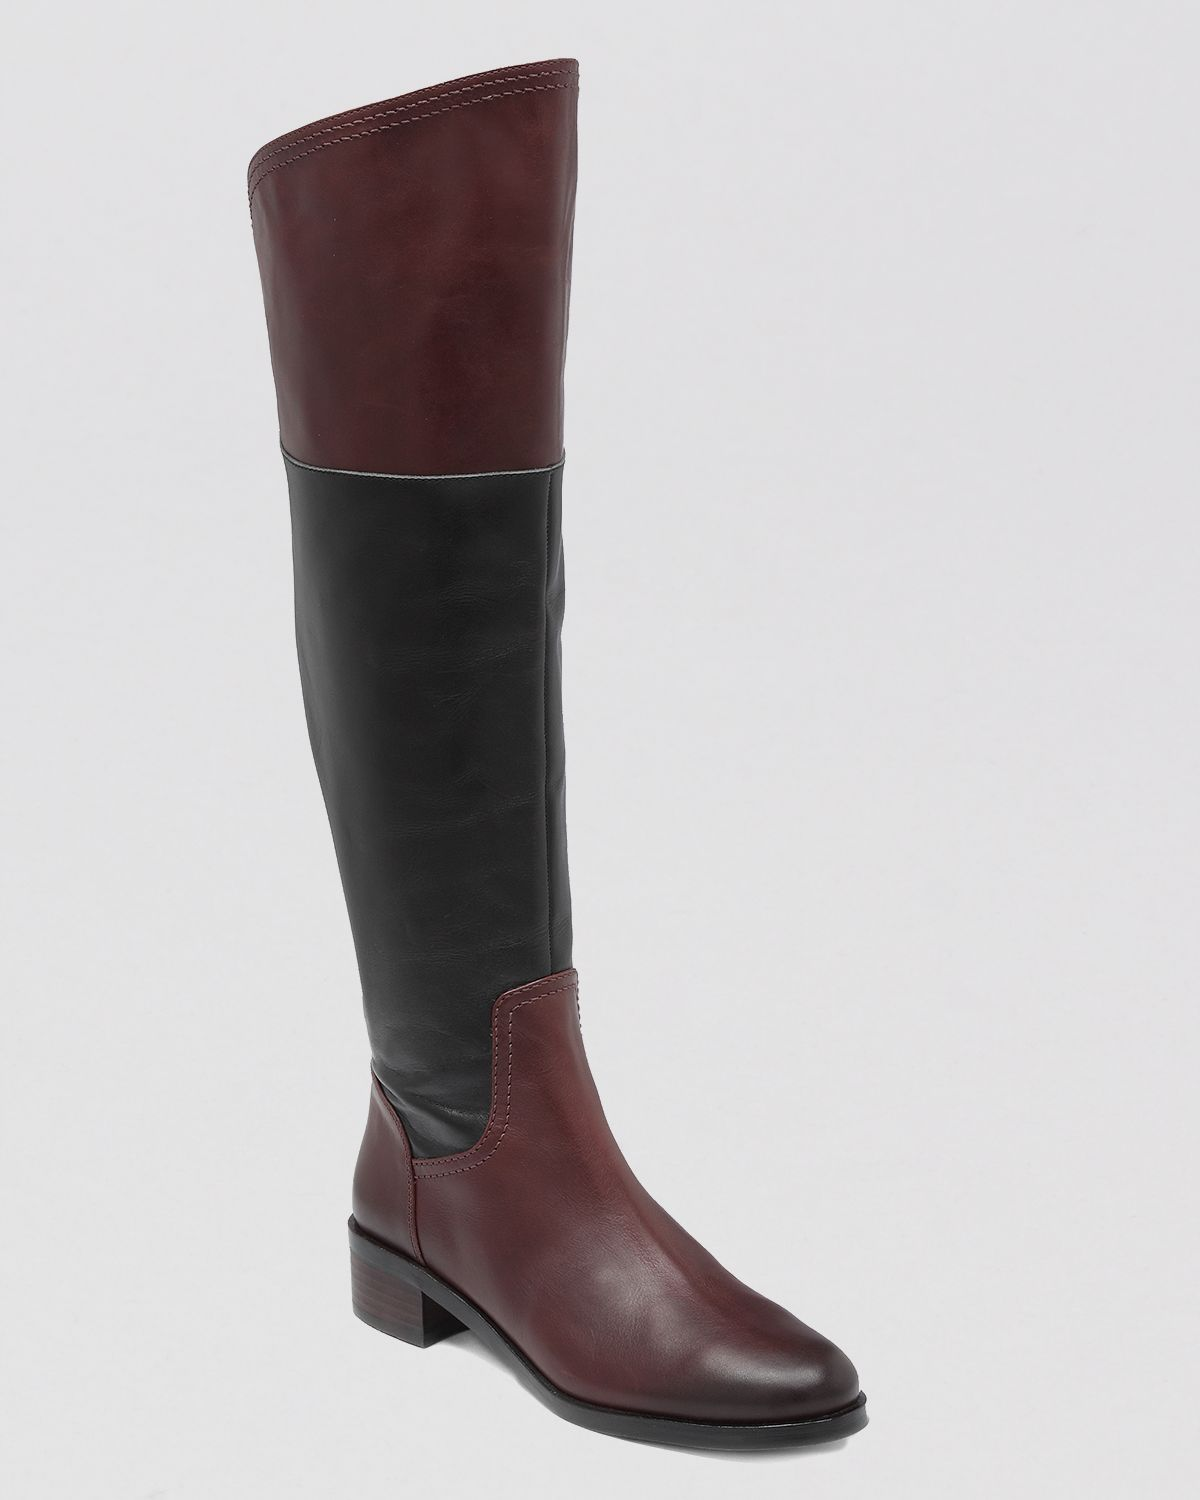 Lyst Vince Camuto Over The Knee Riding Boots Vatero Two